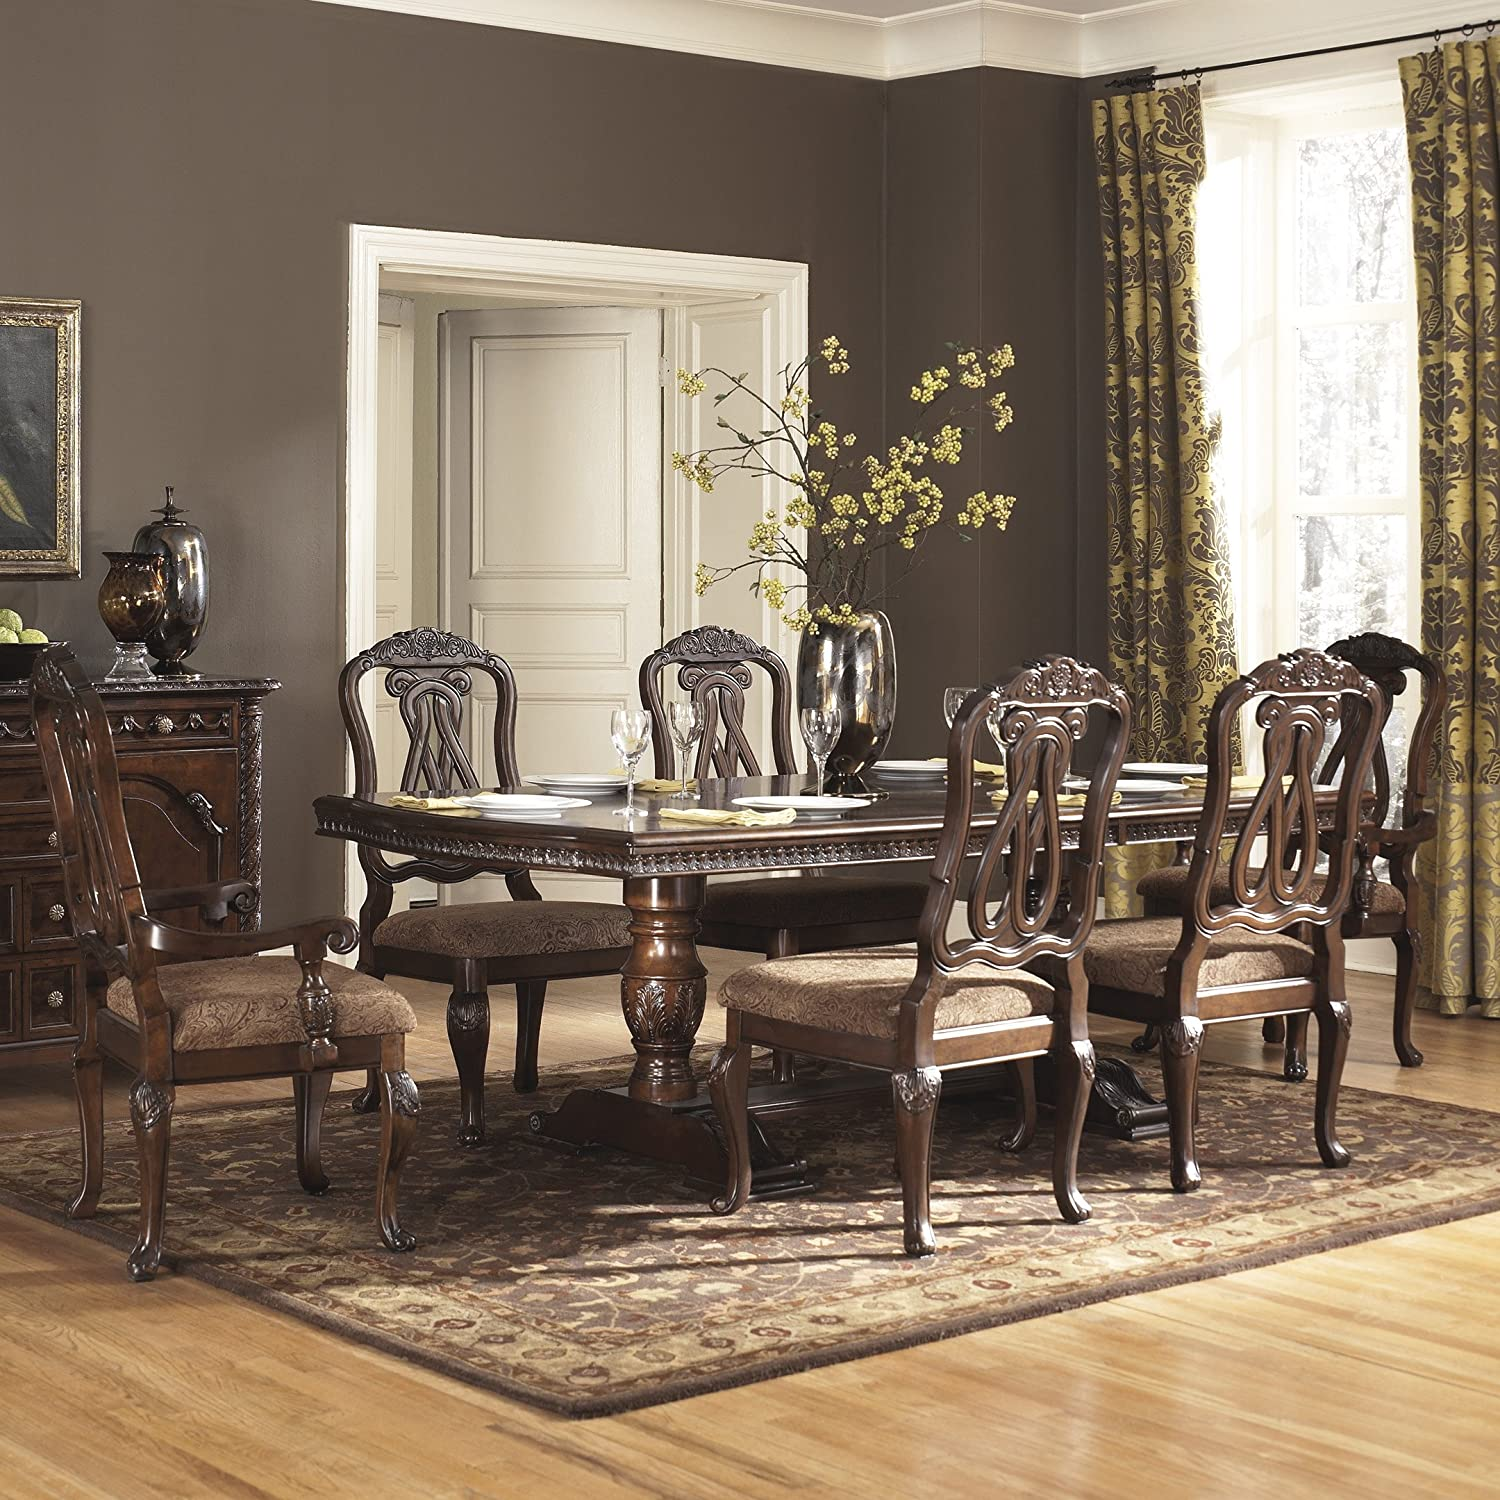 extendable dining room table by signature design by ashley. amazon.com - ashley north shore 7 piece wooden dining table set (d553) \u0026 chair sets extendable room by signature design y